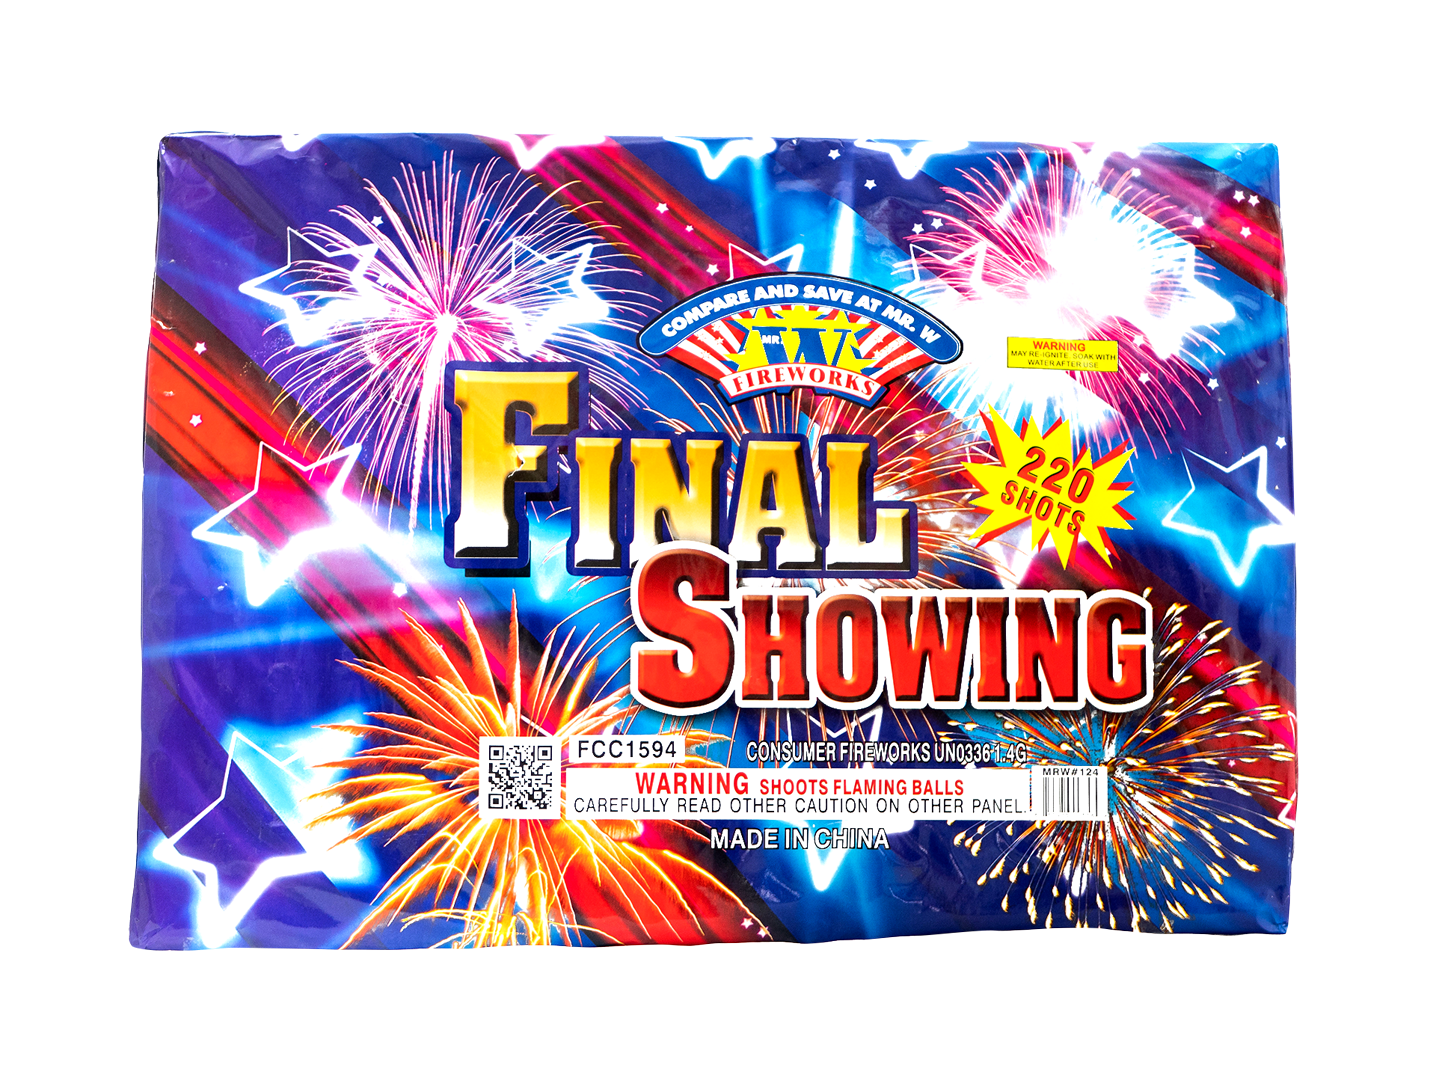 Final Showing